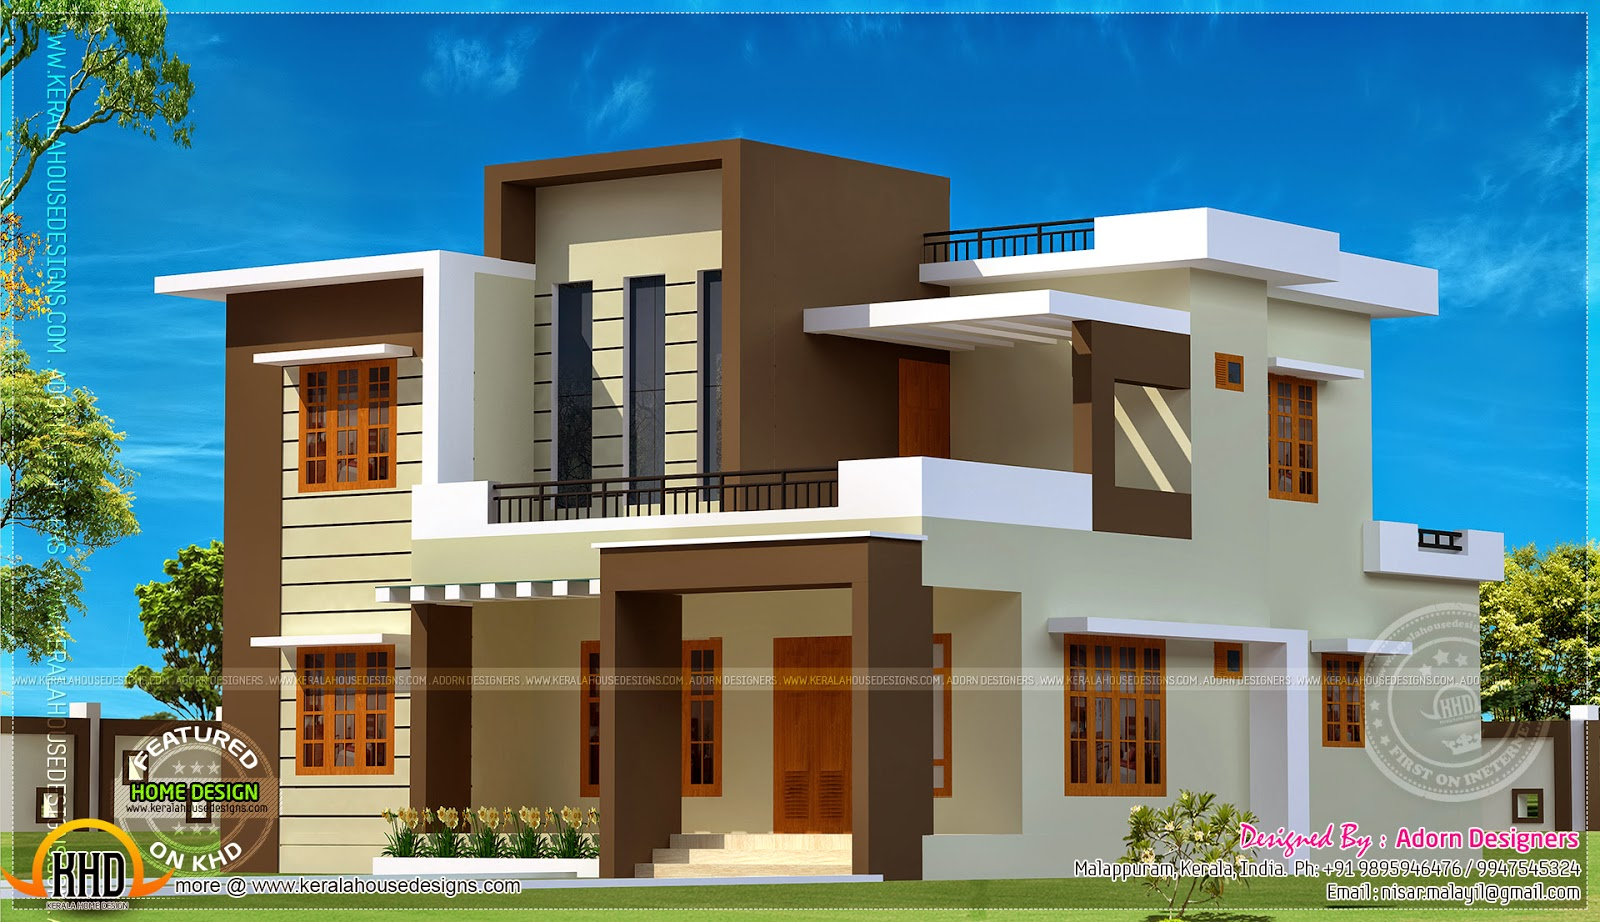 204 square meter flat roof house kerala home design and - Flat roof home designs ...